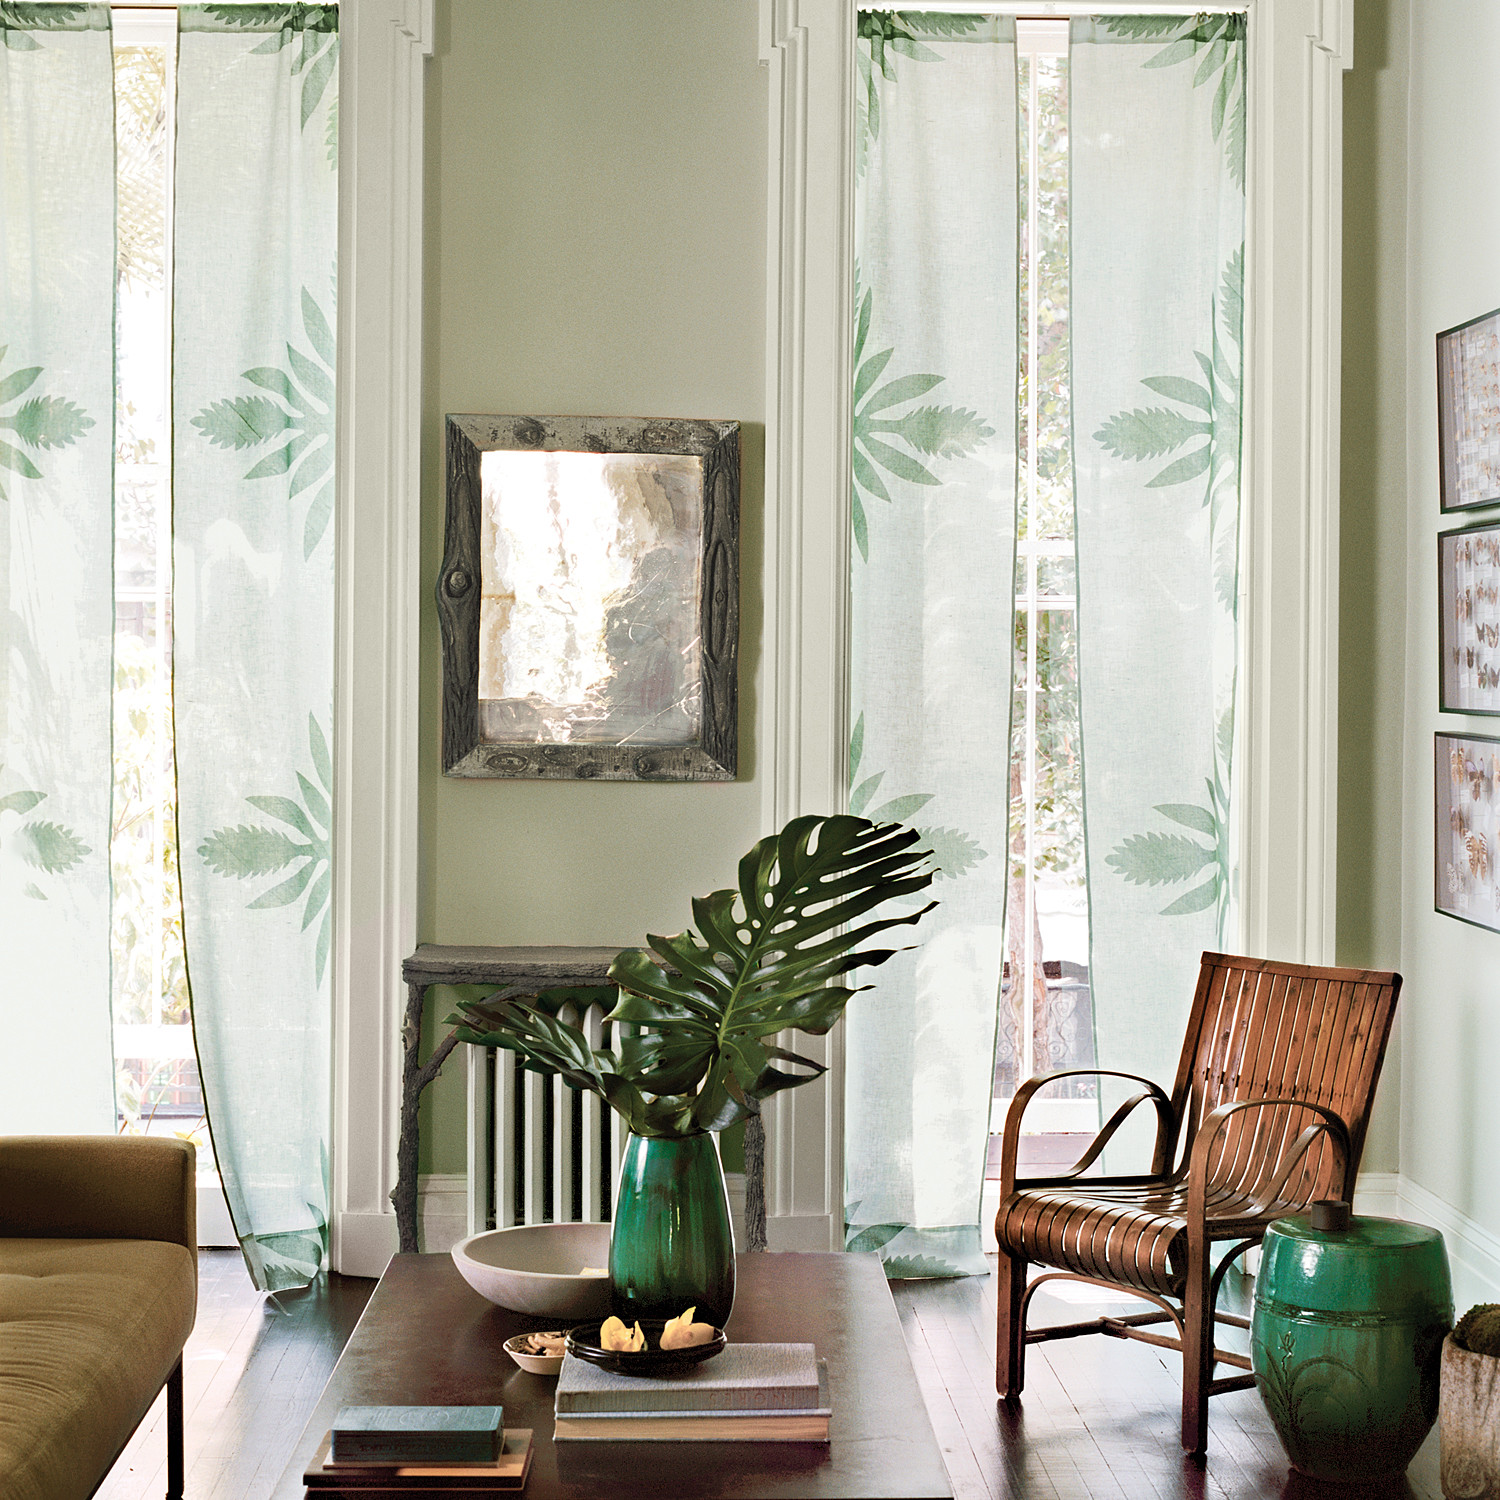 NoSew Applique Curtains with Ginger Flower Print  Martha Stewart